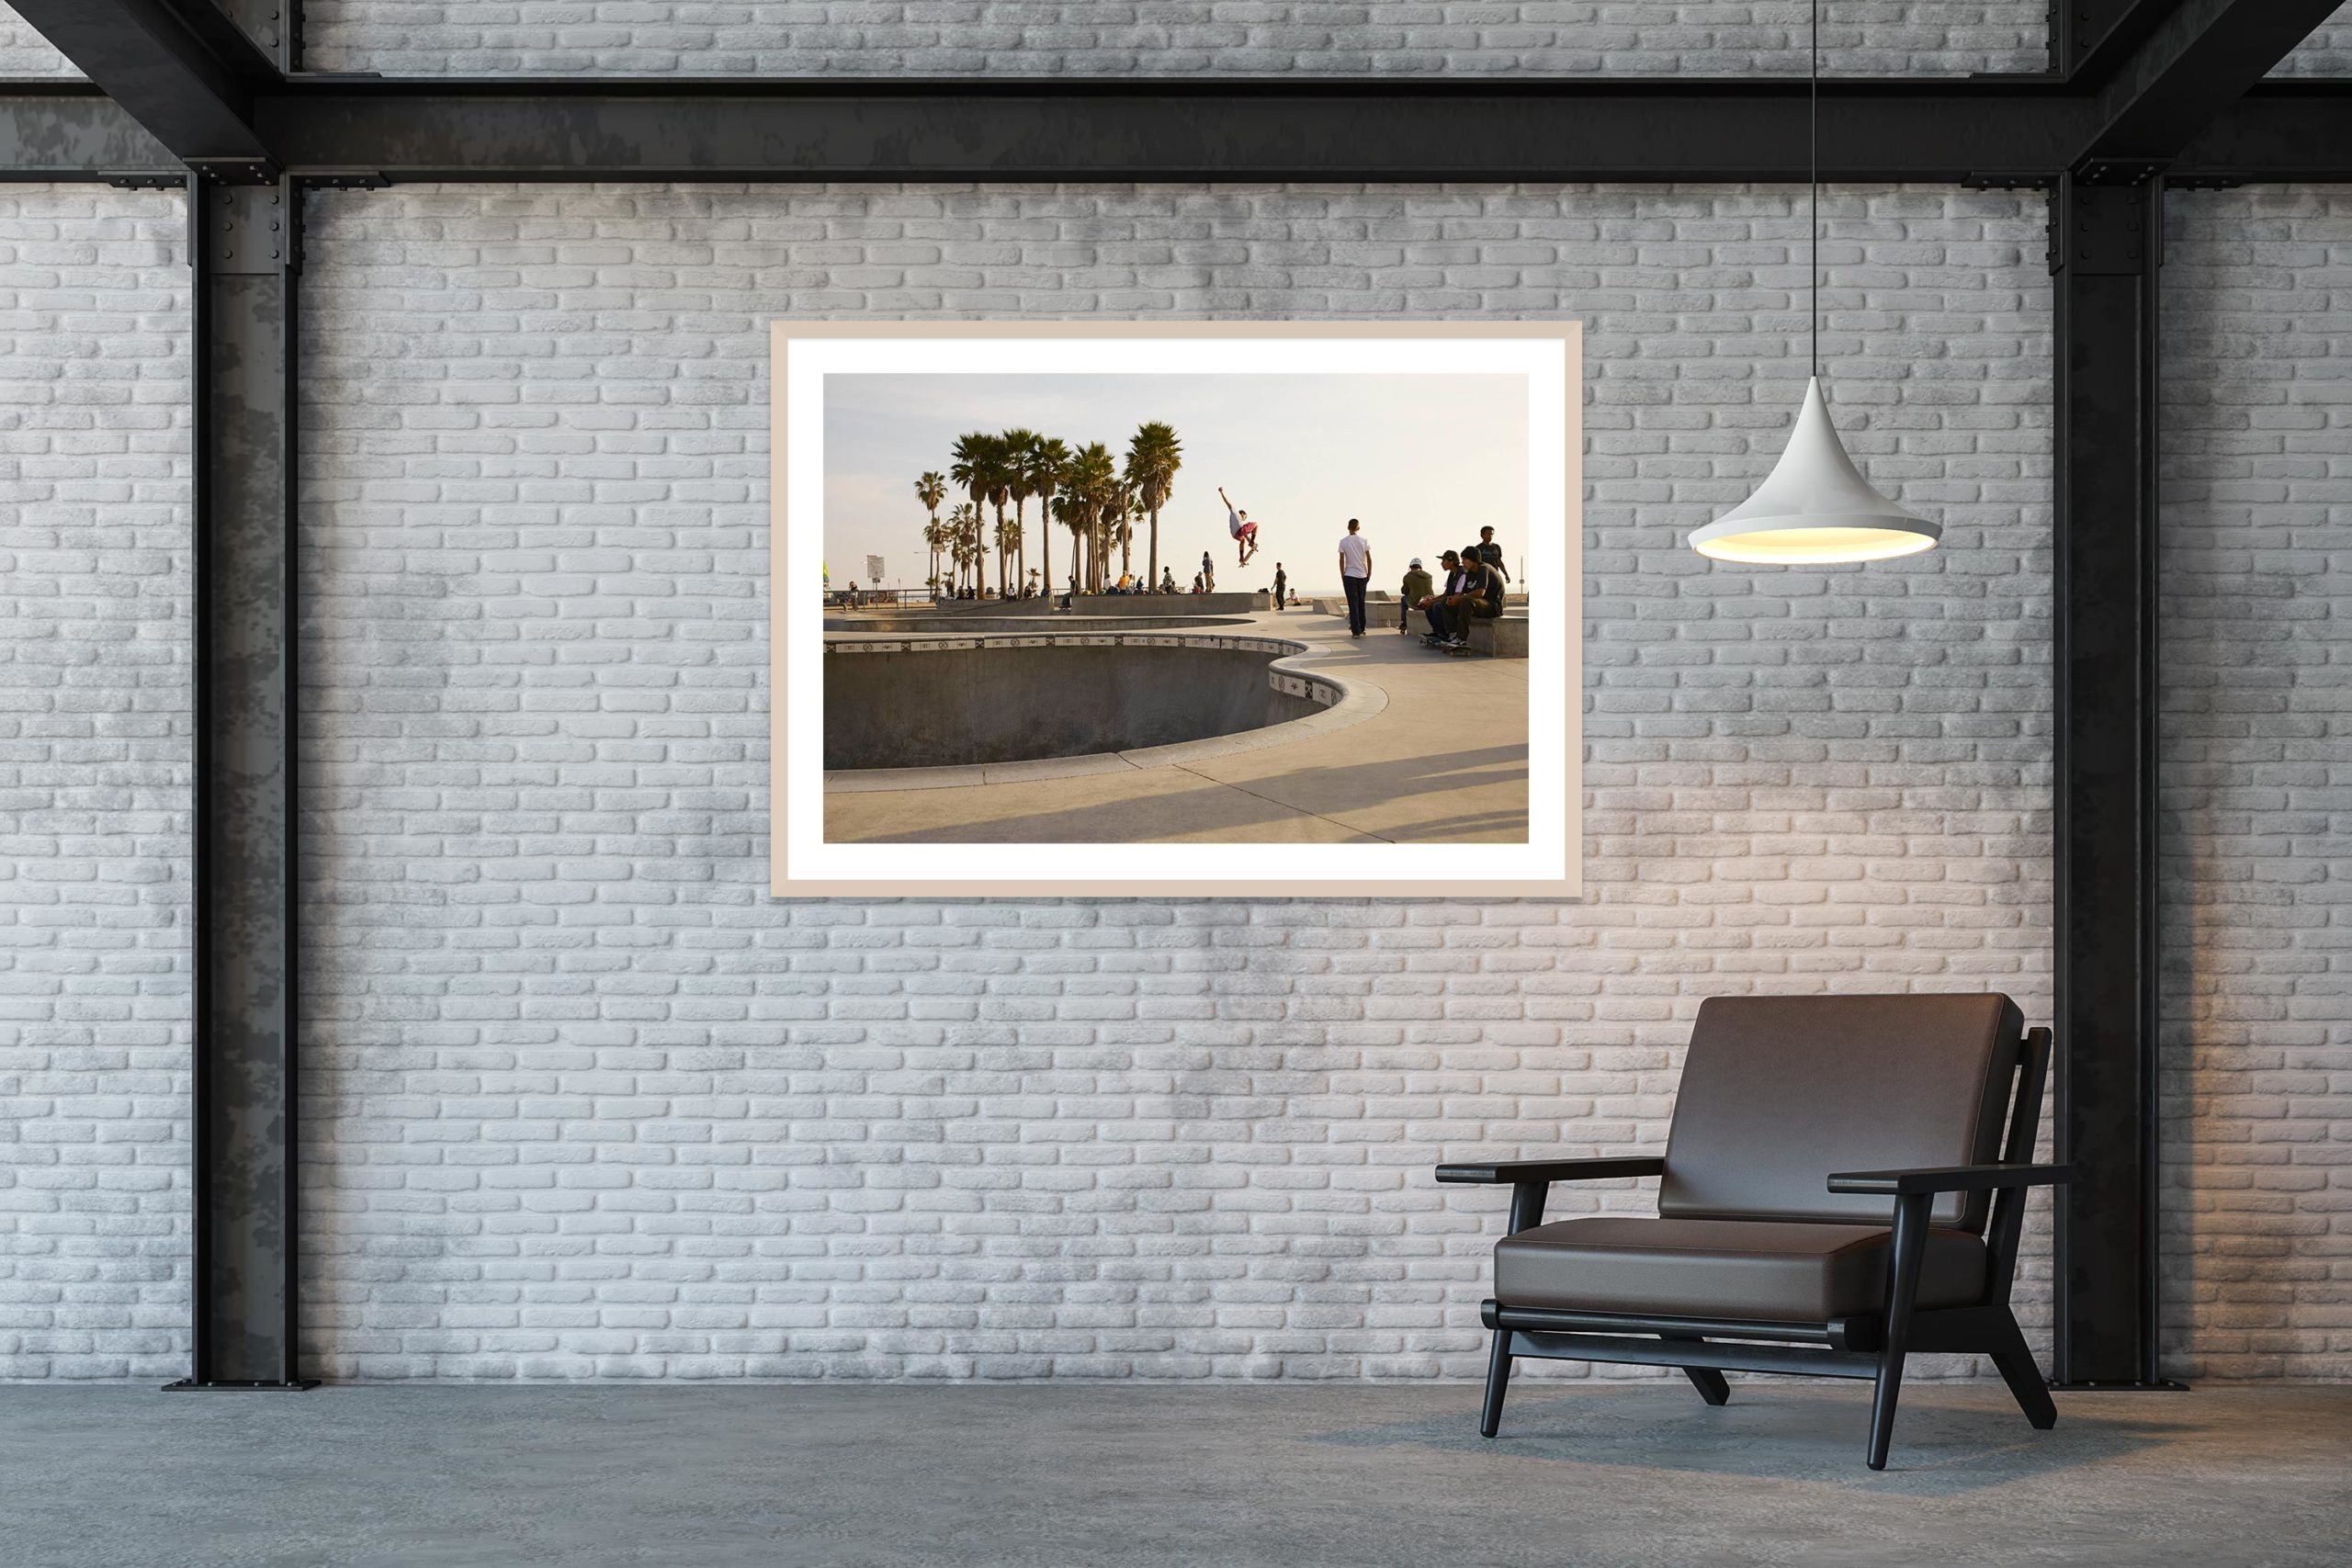 Air - Timber Frame - Skate Park, Venice Beach Collection - Fine Art Photography by Toby Dixon